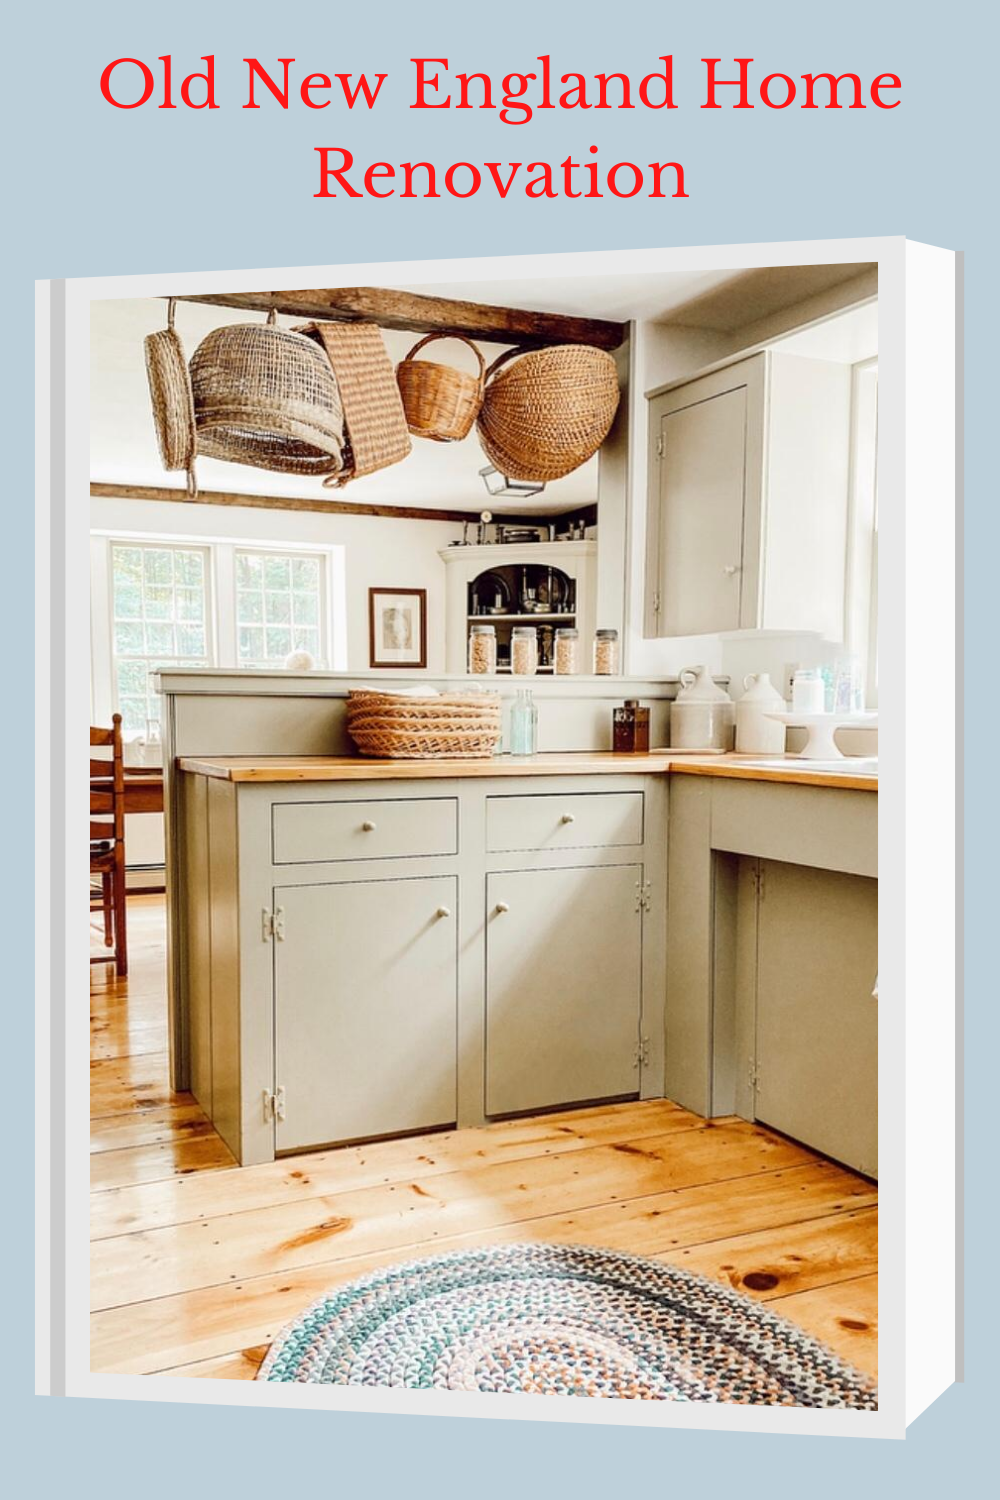 Sharing our coastal Maine home renovation and decorating.  #countryhome #countryhomes #newenglandhome #vintgehome #vintagehomedecor #fleamarketdecor #oldhome #oldhomes